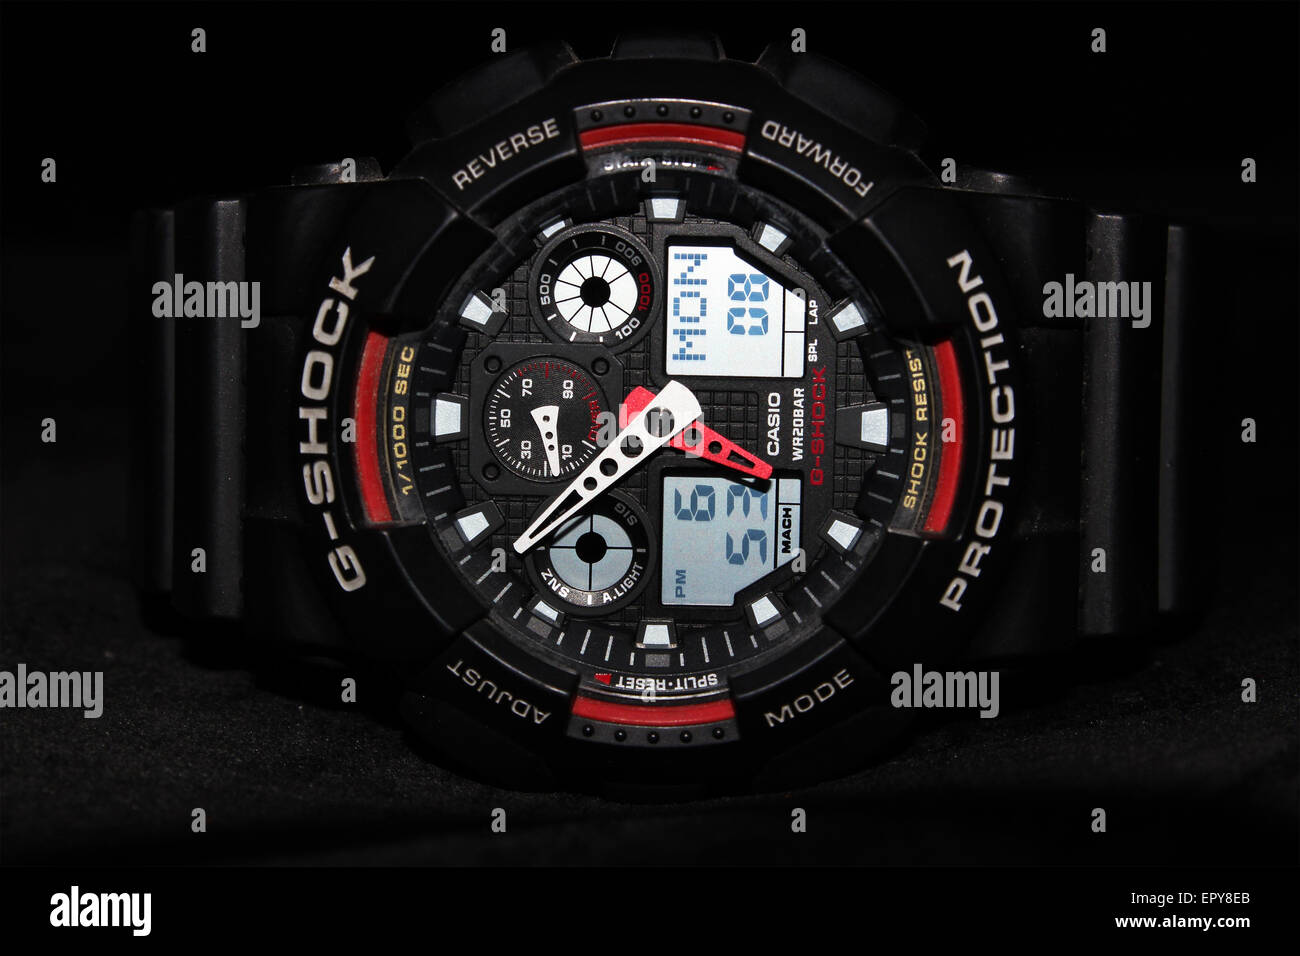 black, G-stock, sports, bezel, chronograph, close, face, glass, hands, nobody, object, seiko, sports, up, watch, - Stock Image